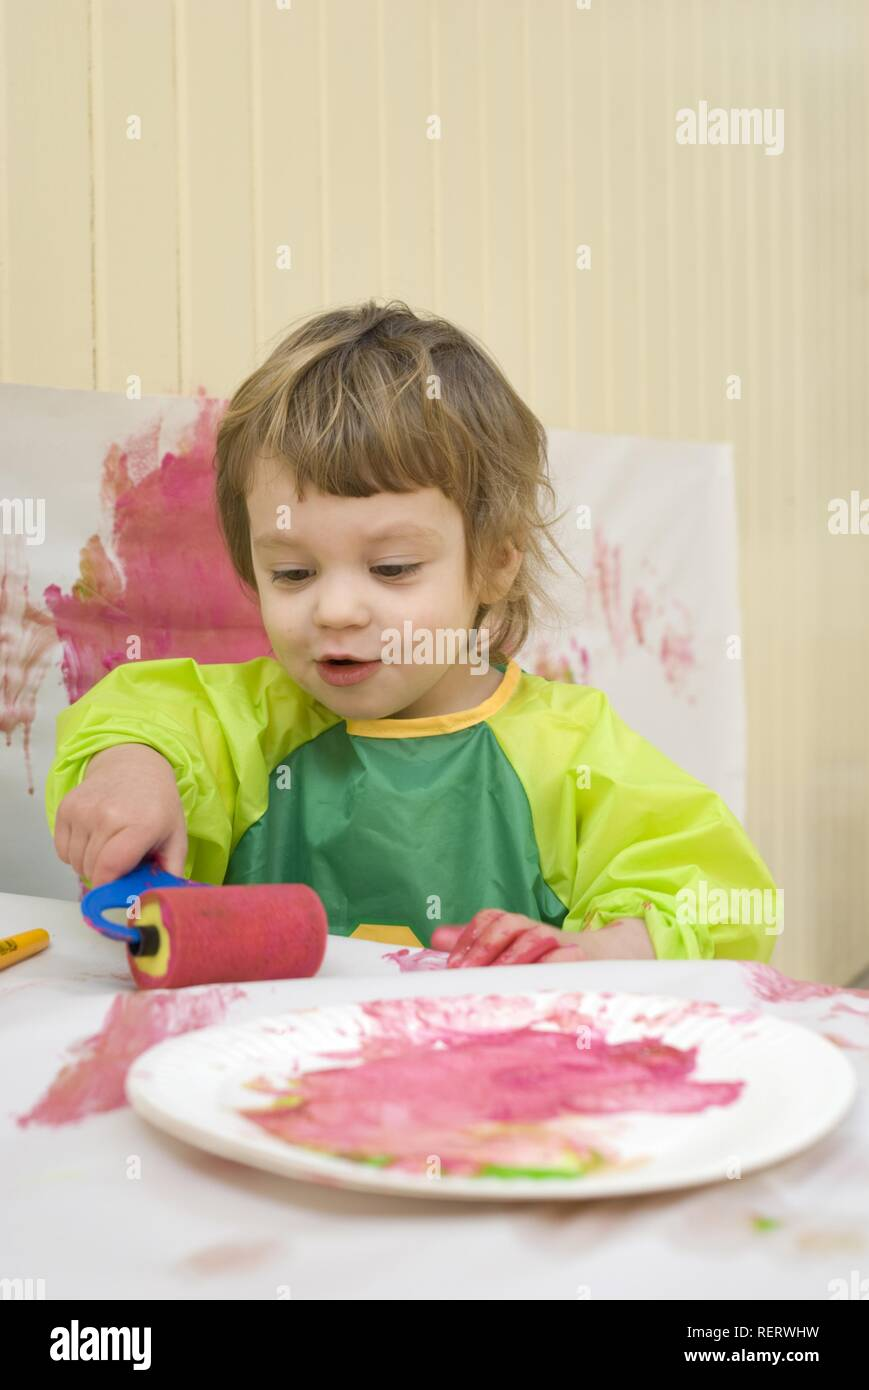 A two year old girl in a plastic smock painting in a playroom with a brush and roller Stock Photo